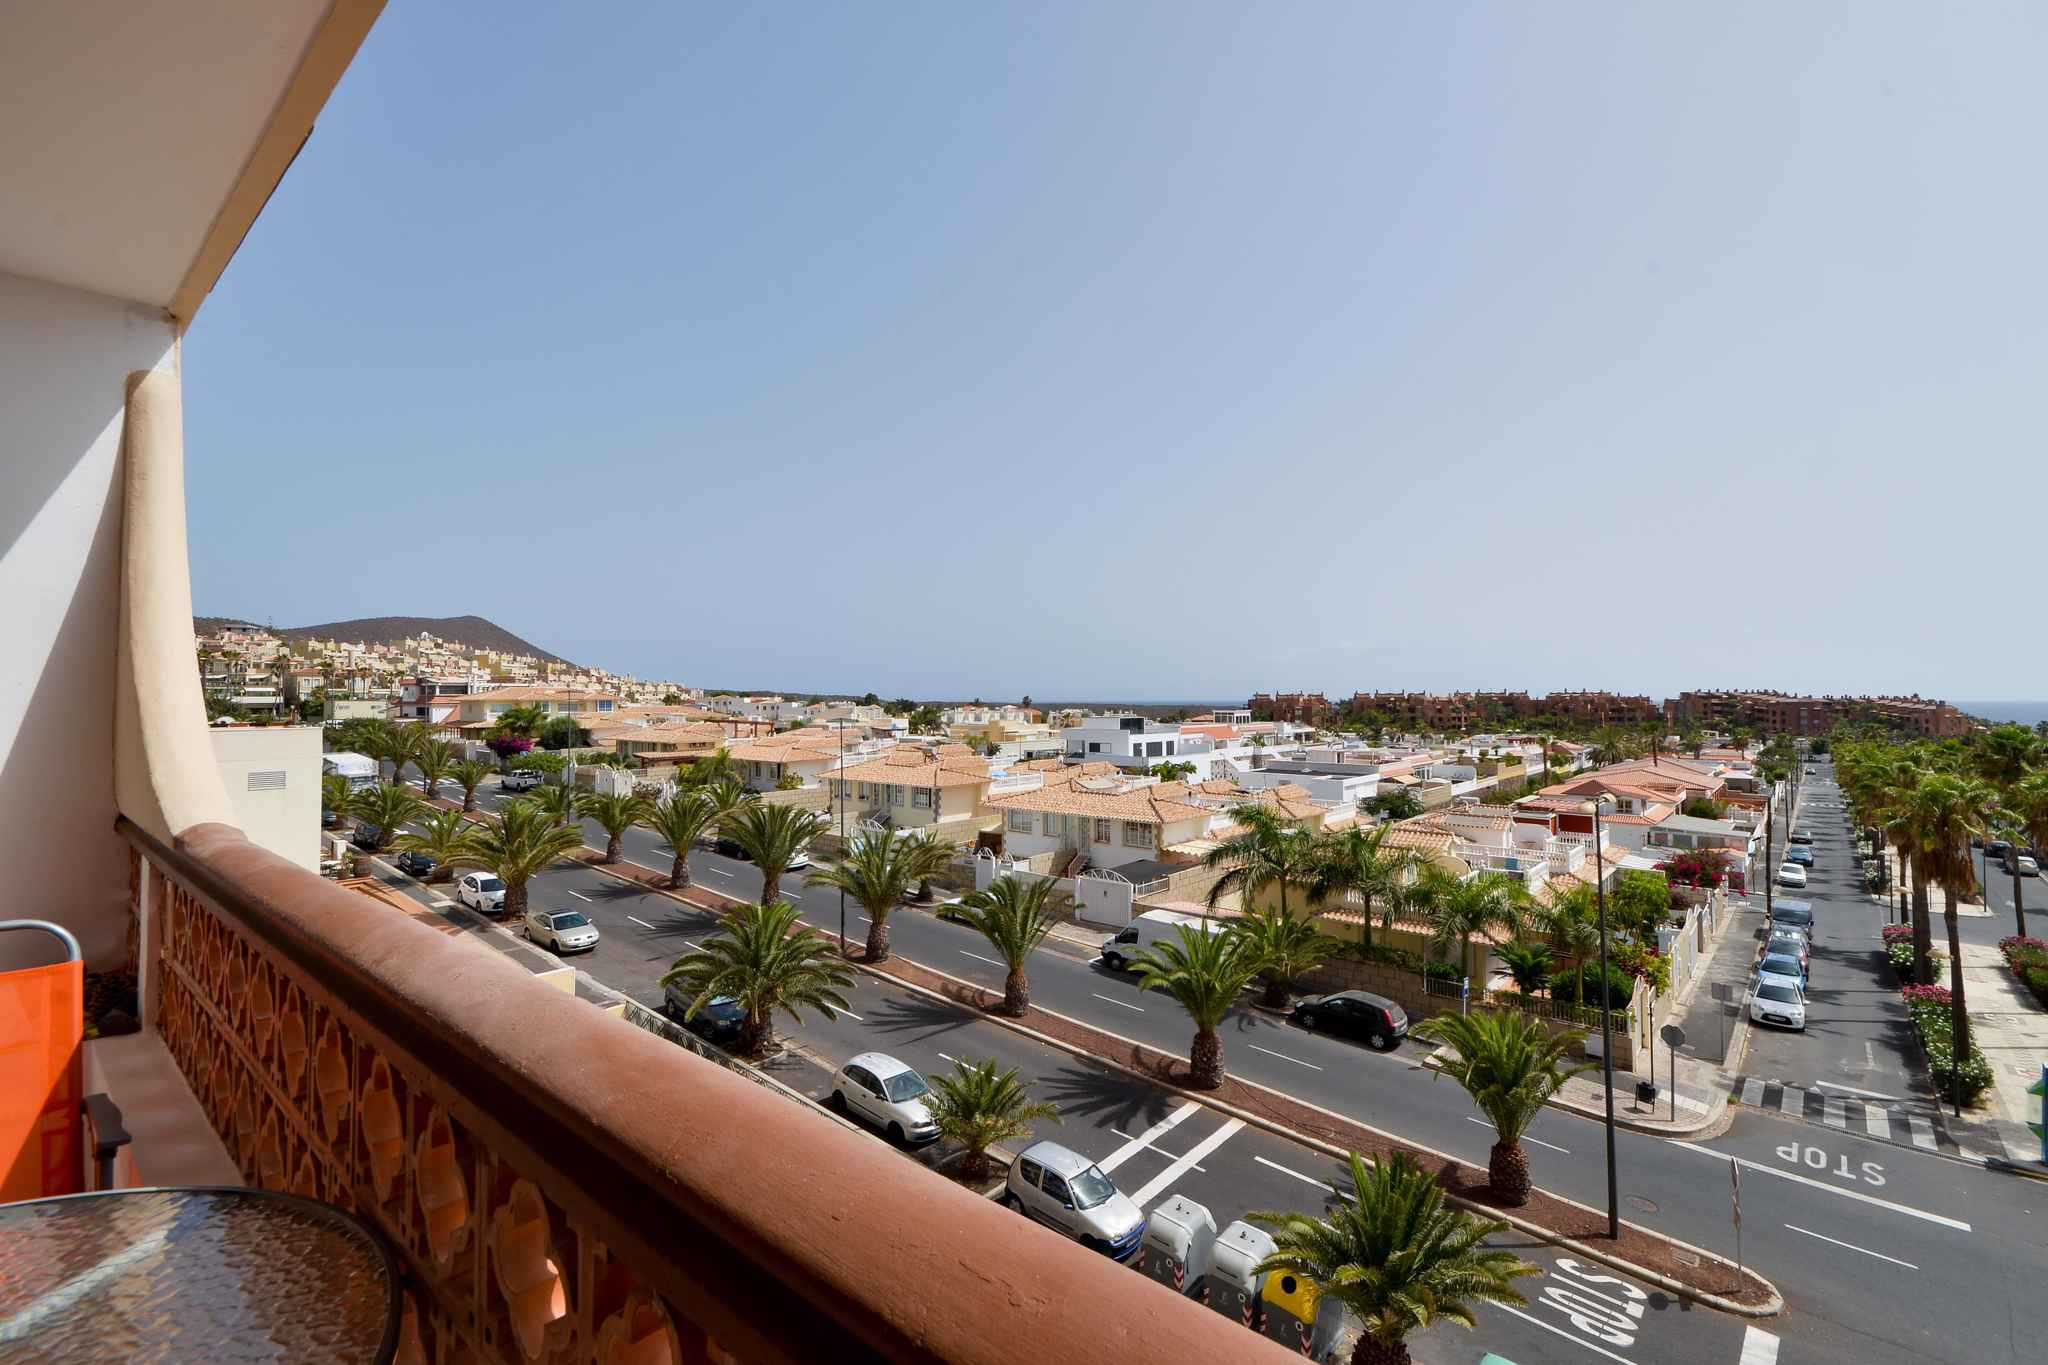 Holiday apartment mit Meerblick und Wifi in Strandnähe (1685535), Palm-Mar, Tenerife, Canary Islands, Spain, picture 3